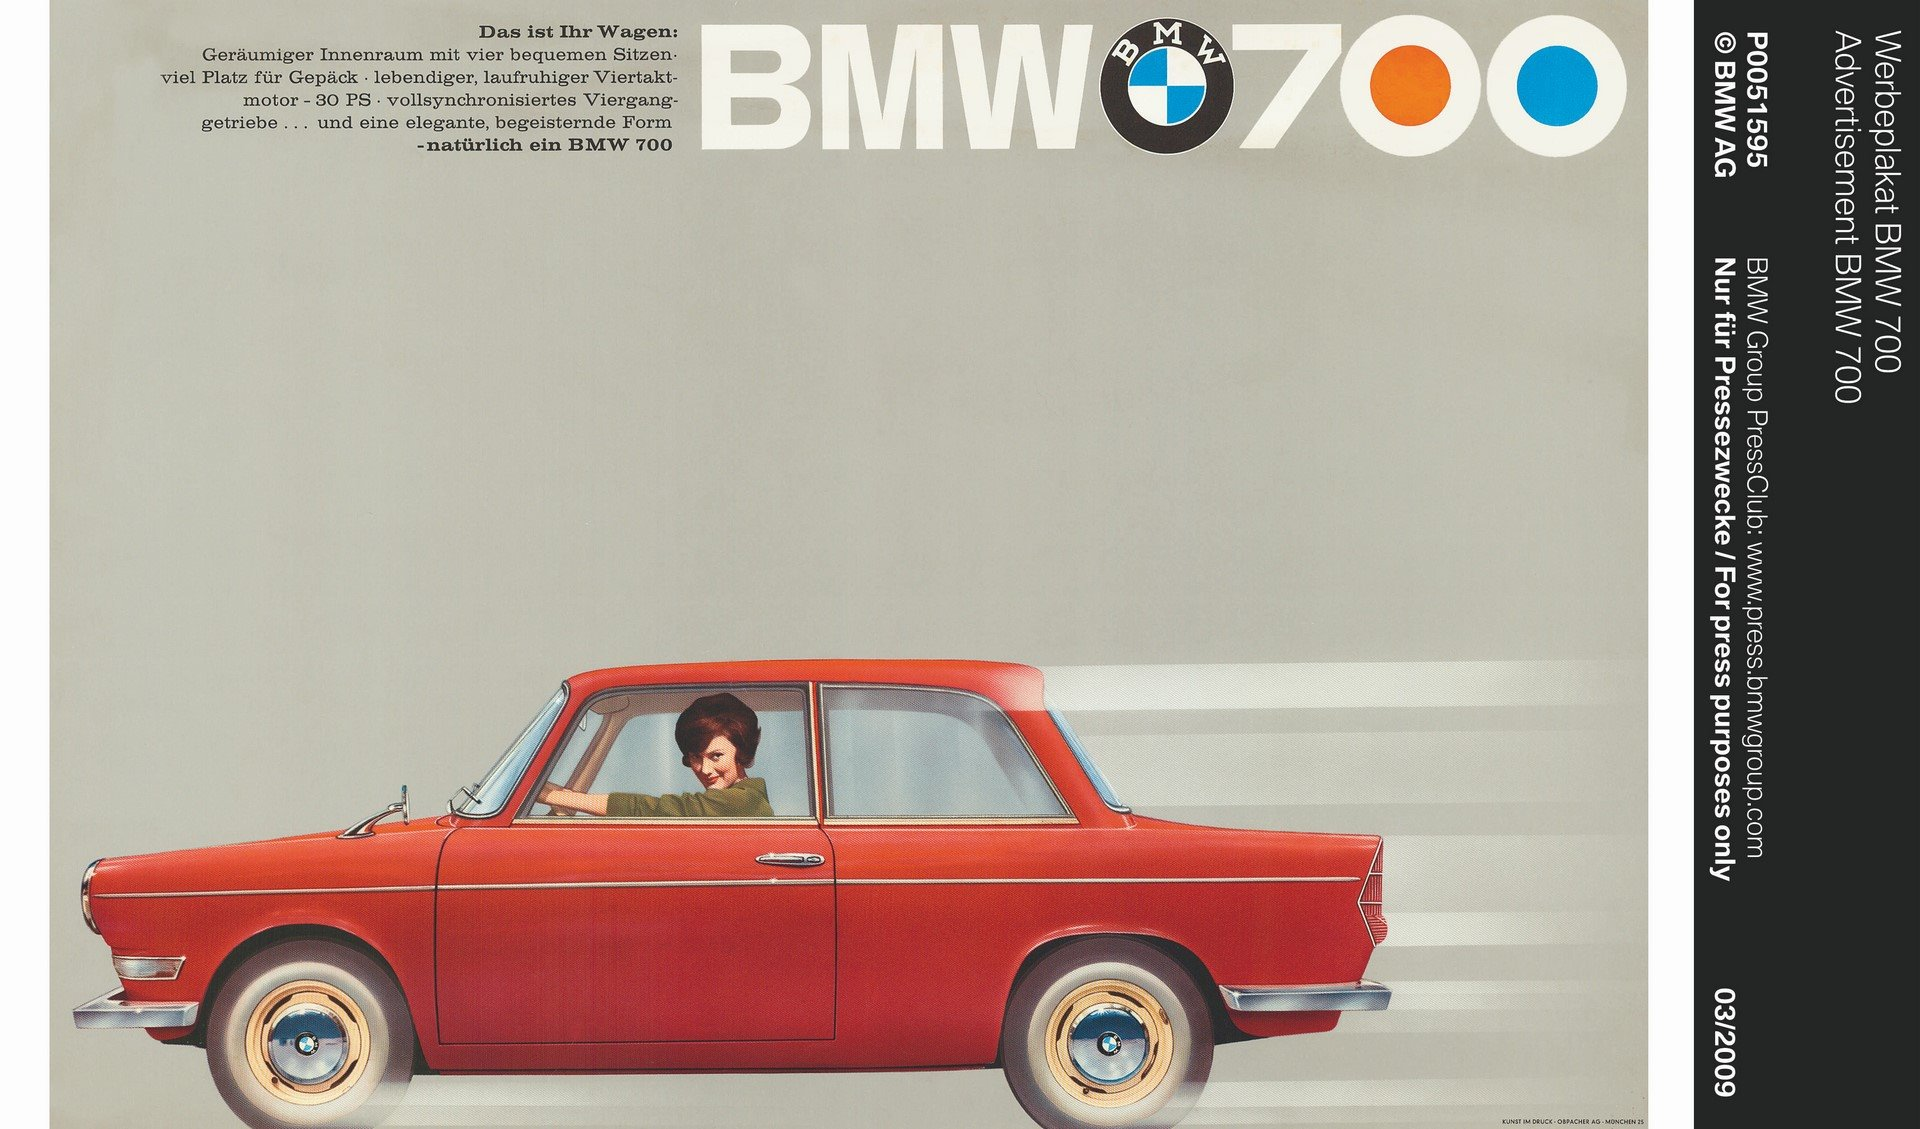 103 years of BMW Group (24)